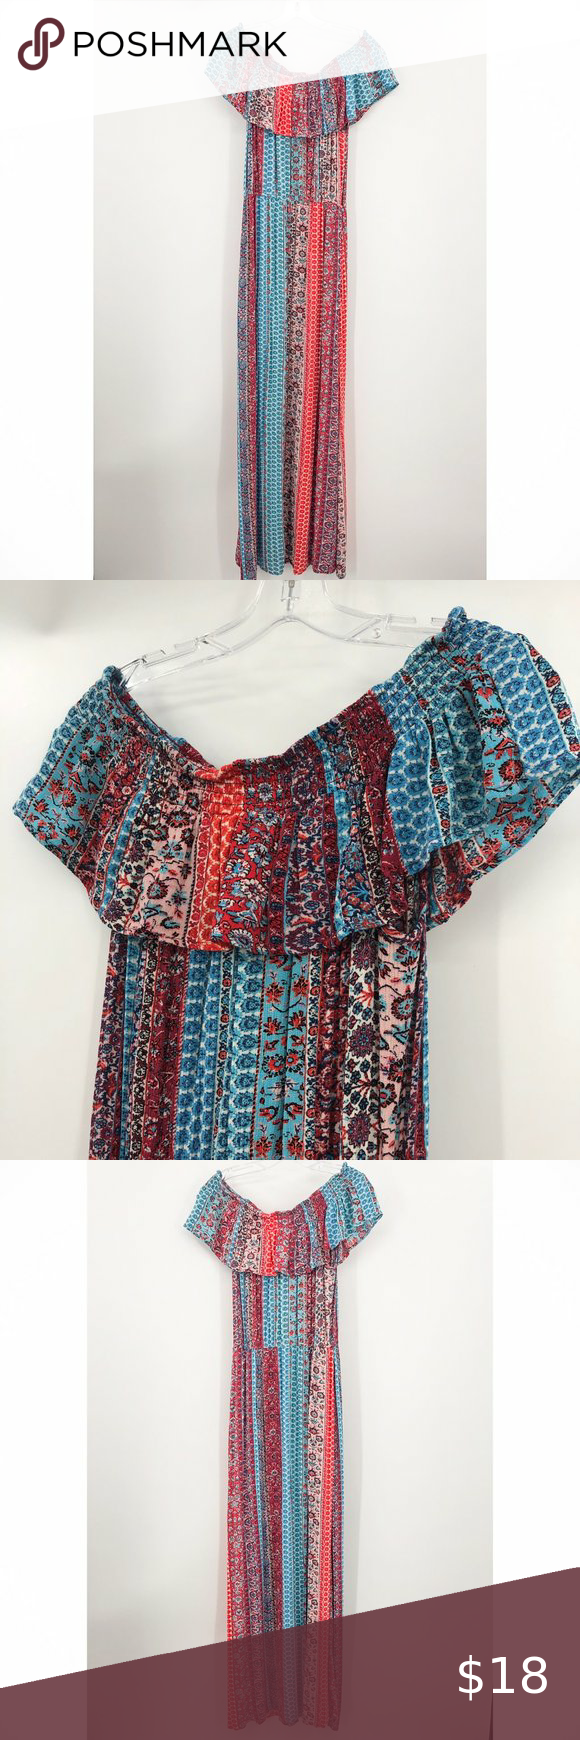 Xhilaration Maxi Dress In Red And Blue Print Printed Maxi Dress Printed Maxi Red And Blue [ 1740 x 580 Pixel ]